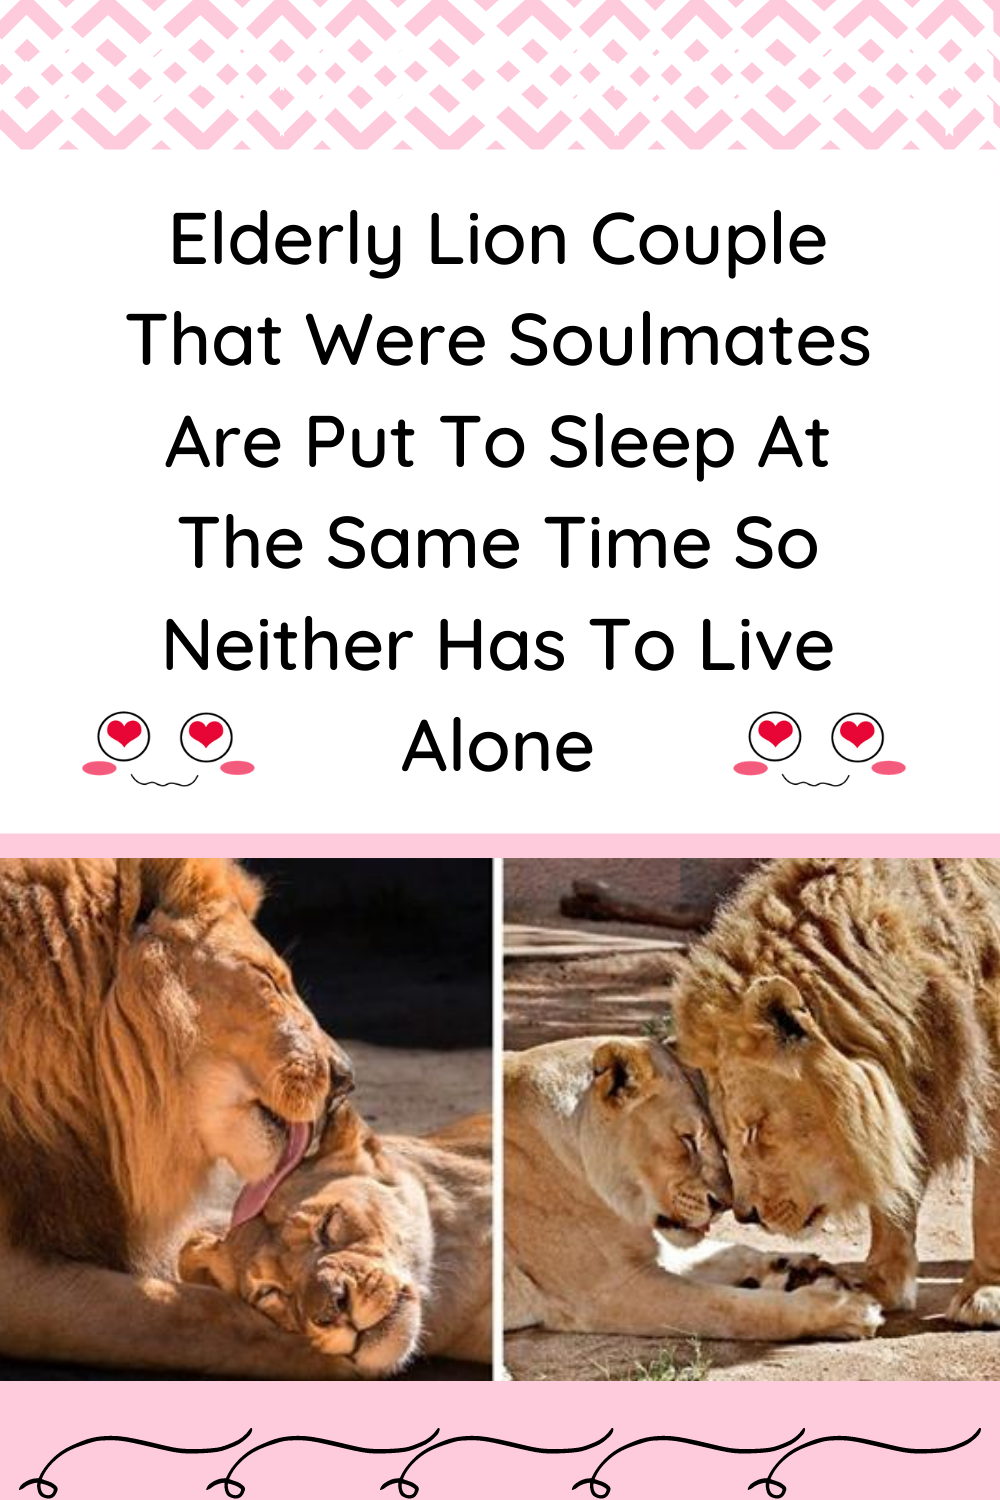 Elderly Lion Couple That Were Soulmates Are Put To Sleep At The Same Time So Neither Has To Live Alone In 2020 Lion Couple Living Alone Elderly